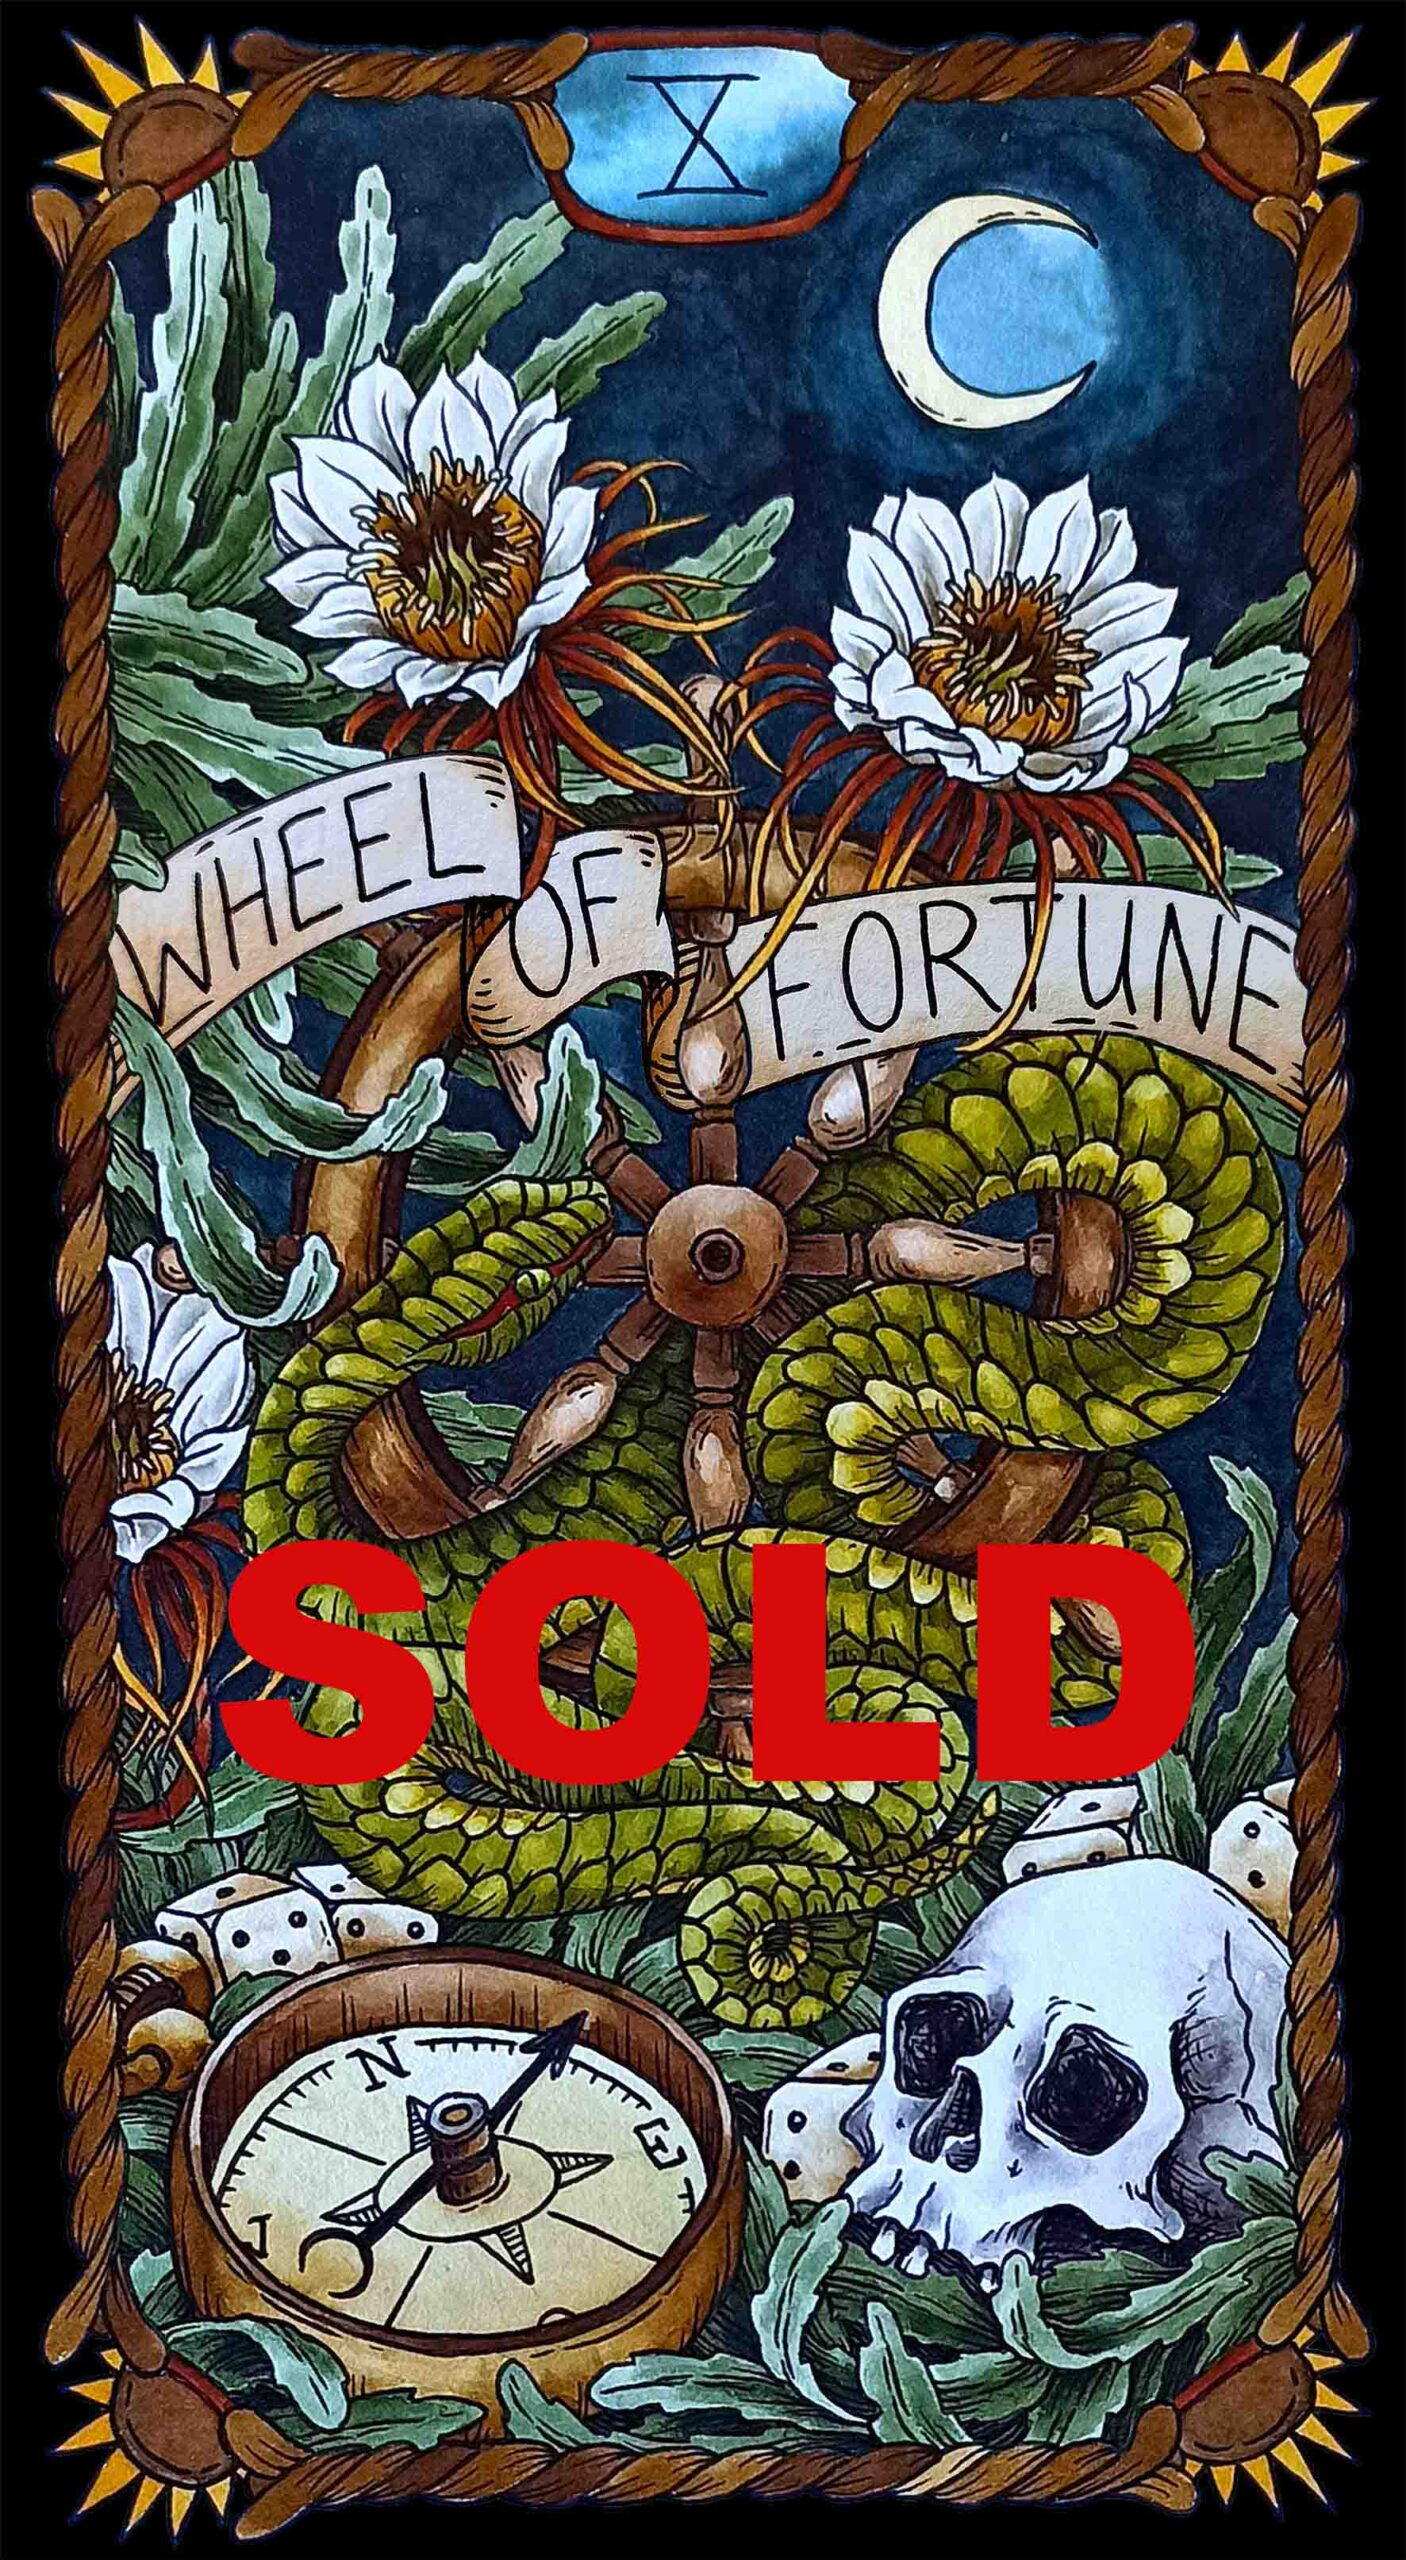 10 Wheel text sold